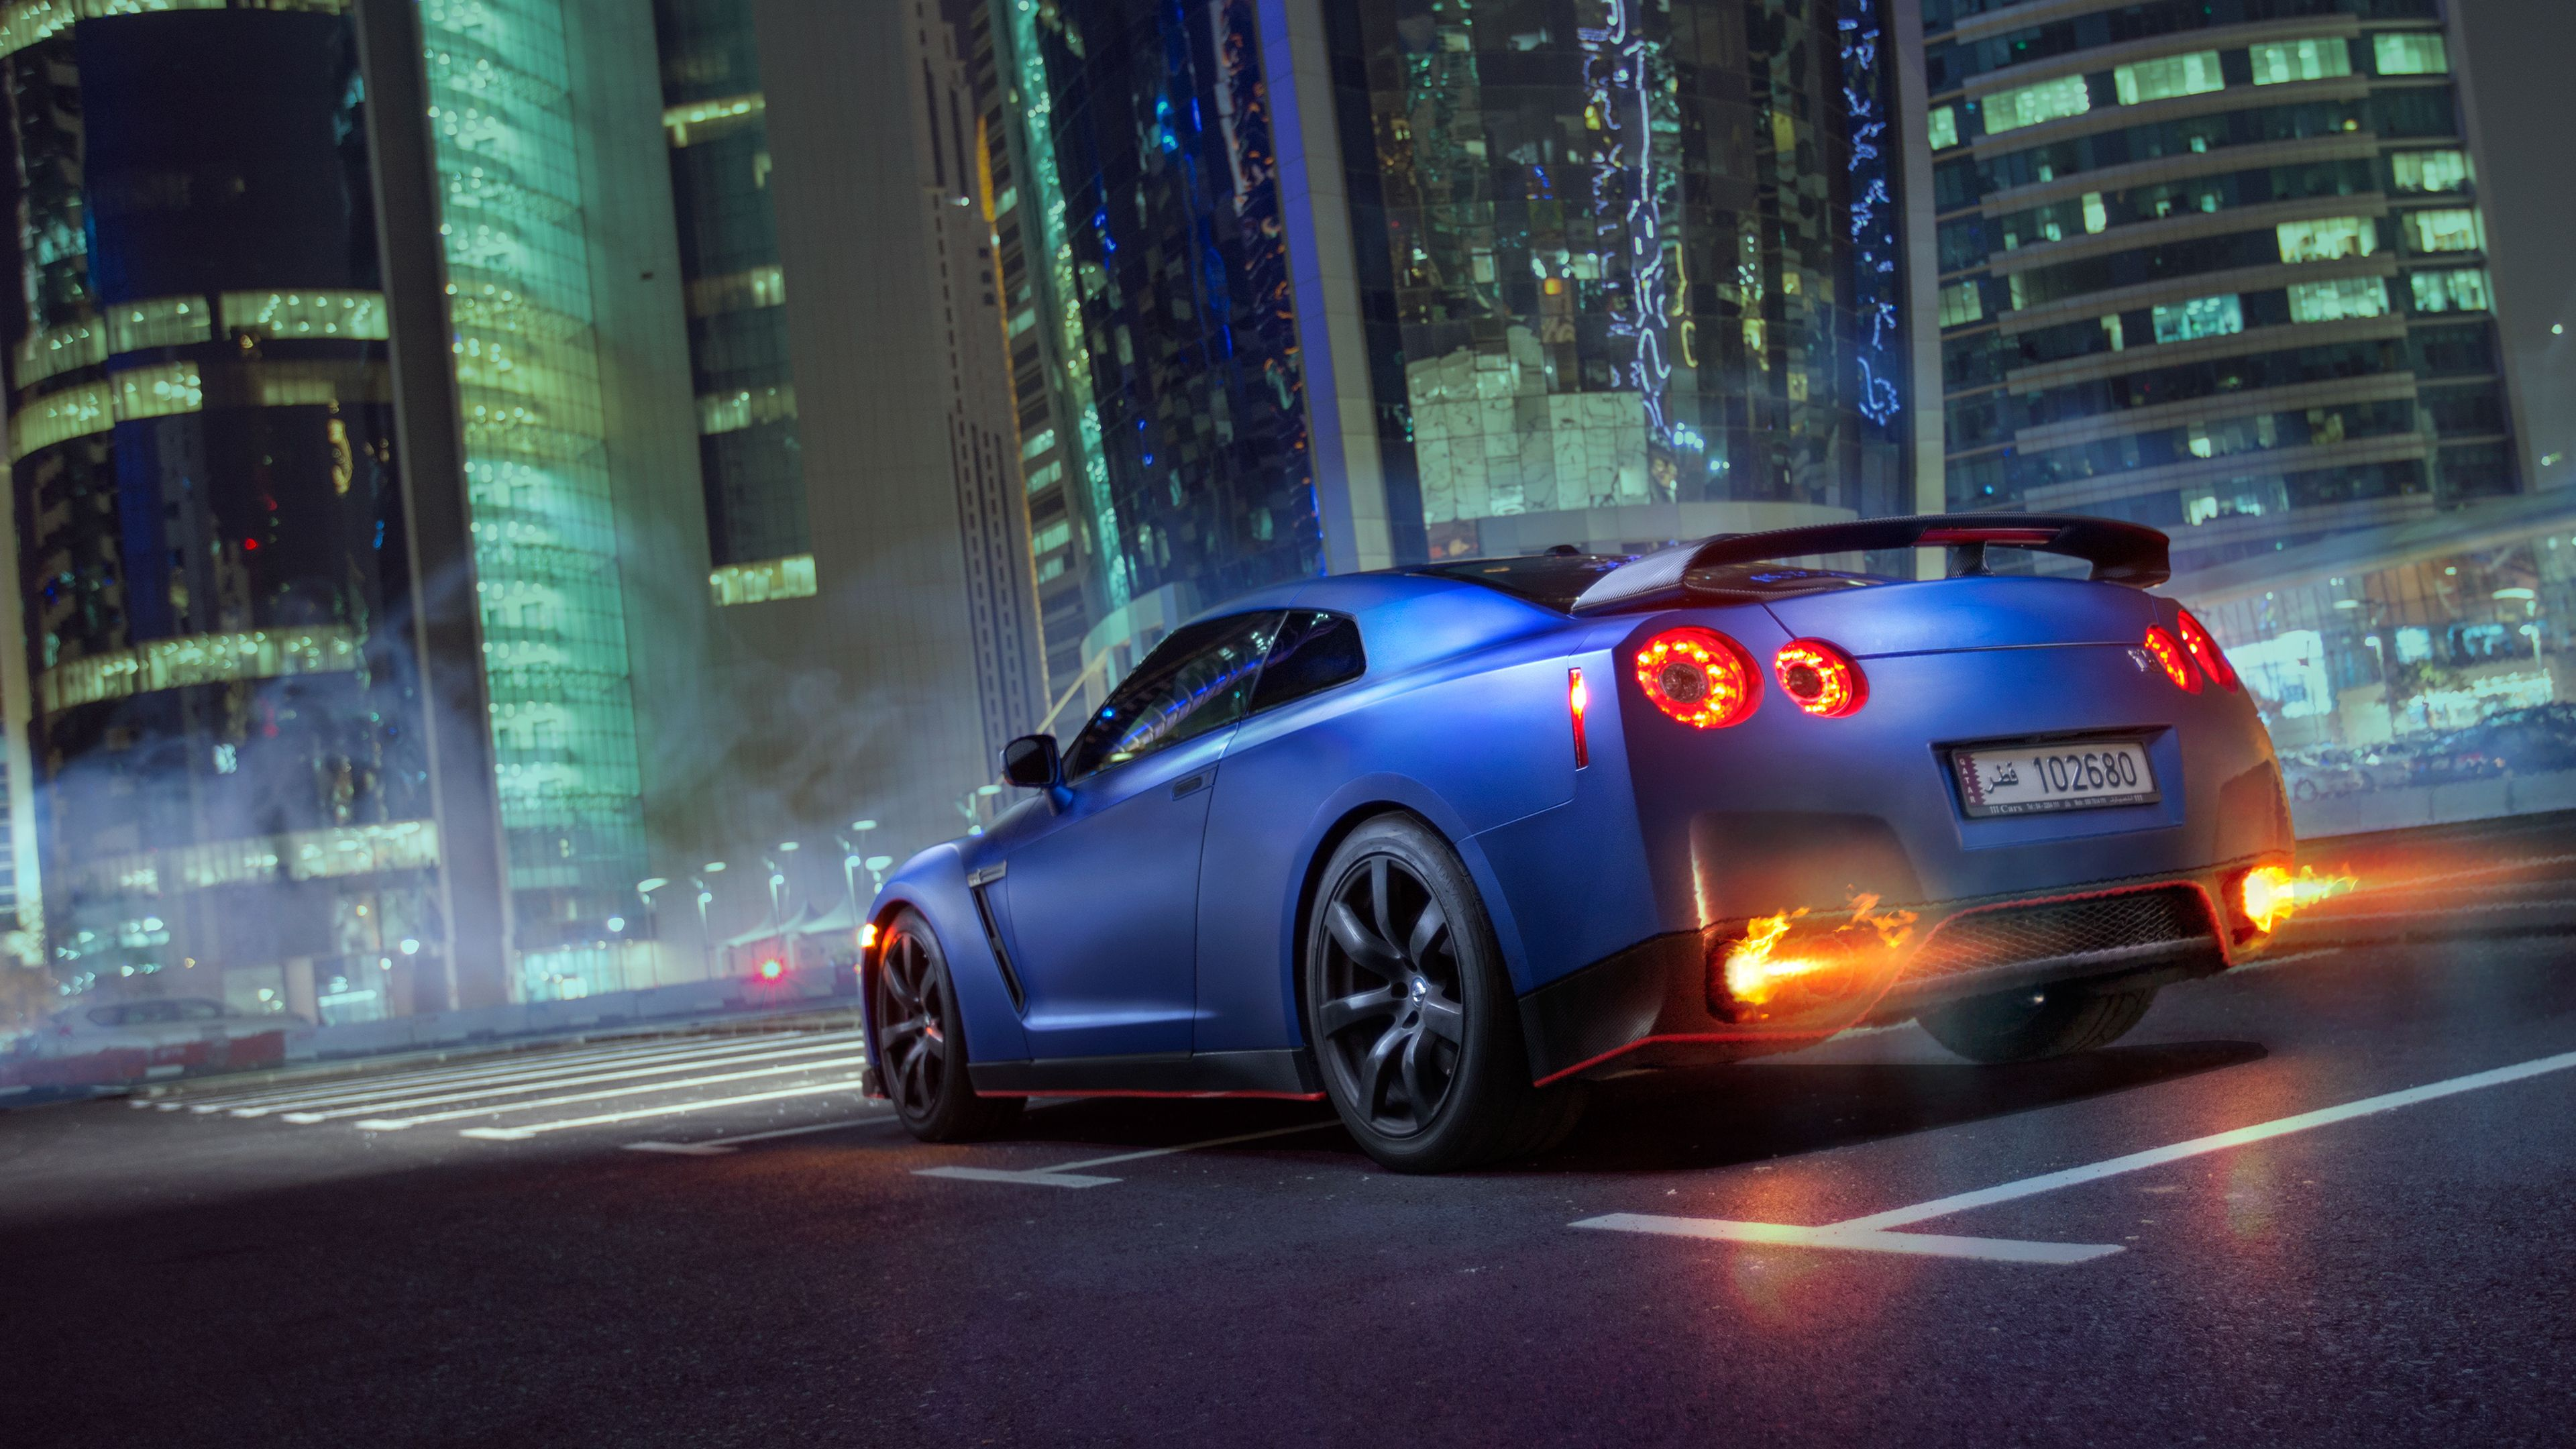 Nissan Gtr Rear 4k Nissan Wallpapers Nissan Gtr Wallpapers Hd Wallpapers Cars Wallpapers Behance Wallpapers Nissan Gtr Wallpapers Nissan Gtr Car Wallpapers